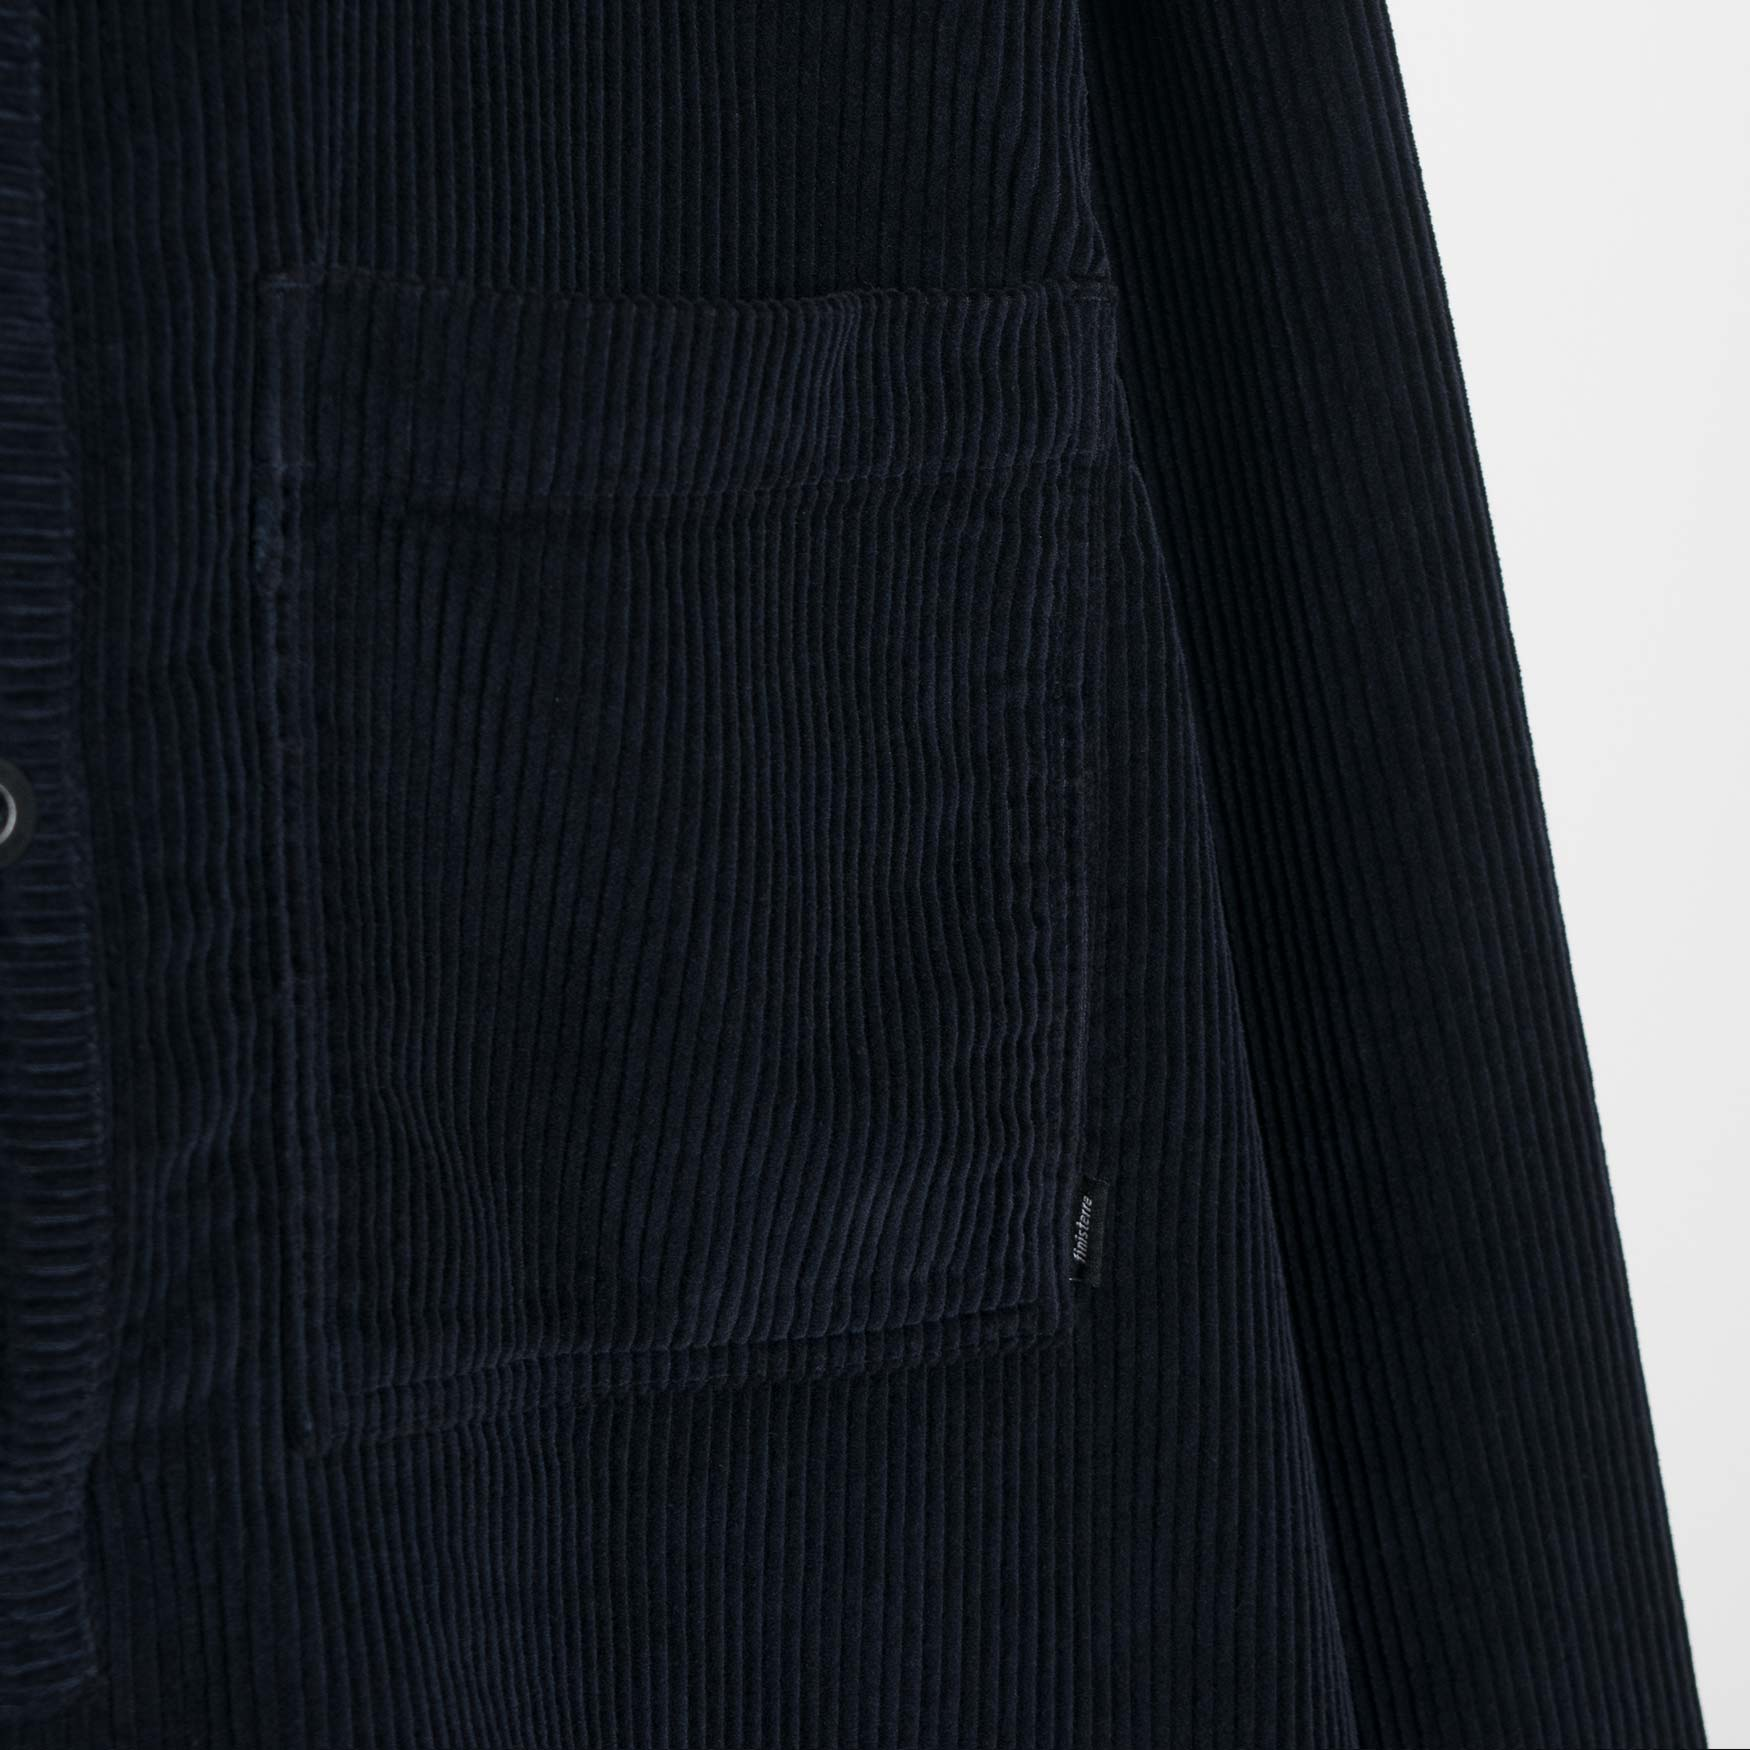 Finisterre Fishermans Corduroy Shirt - Navy Shirt - CARTOCON